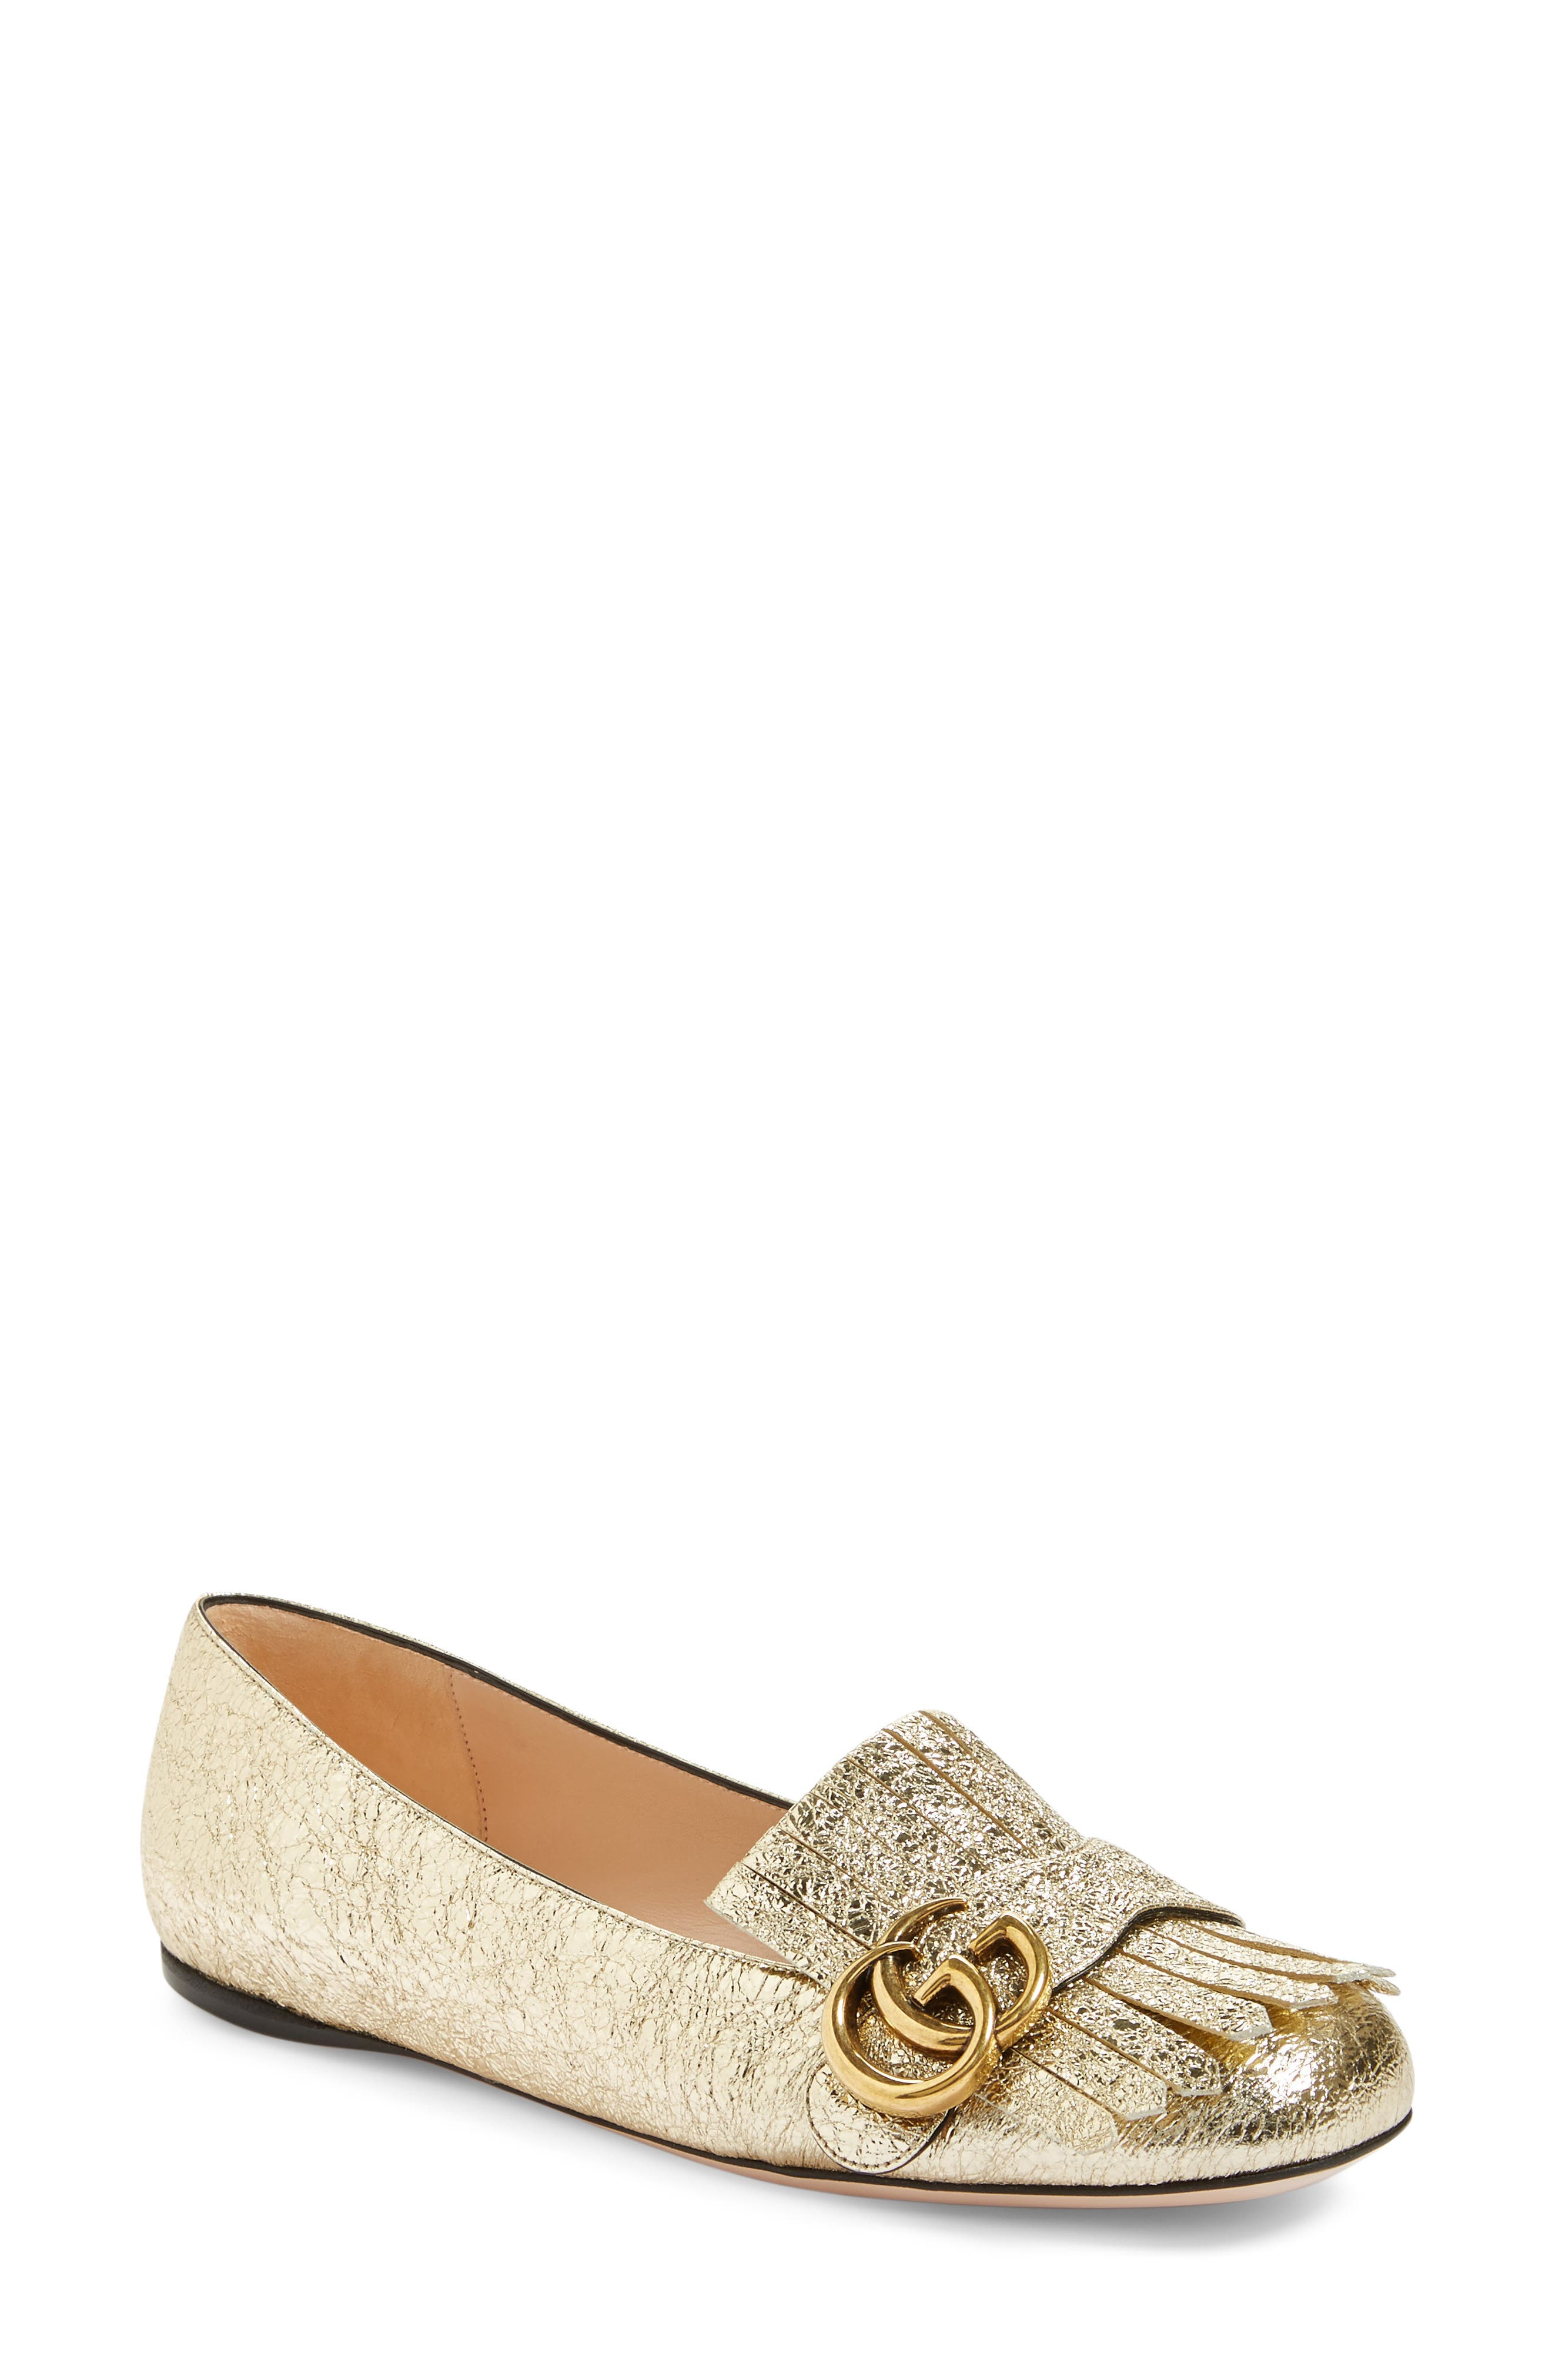 GG Marmont Flat,                         Main,                         color, 710